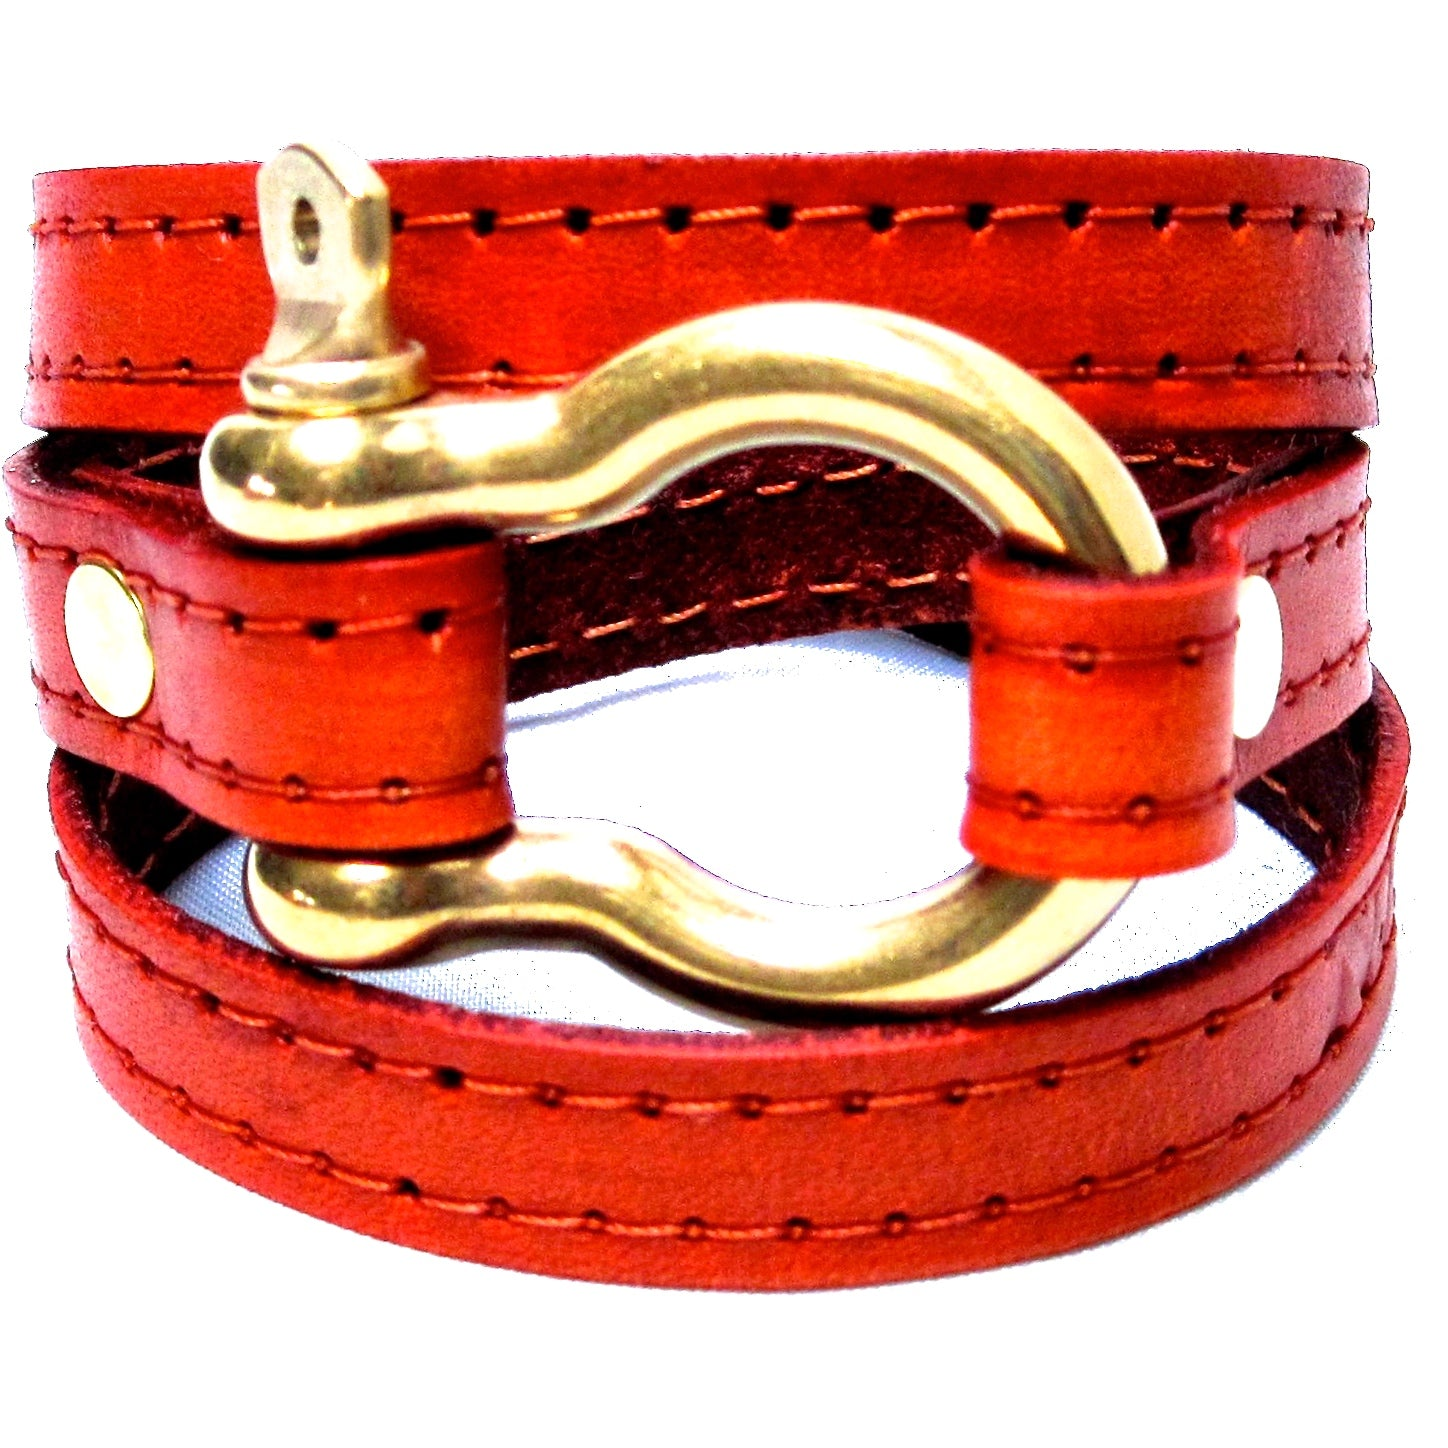 Nyet jewelry Signature Gold Shackle Wraparound Bracelet Orange BY NYET JEWELRY